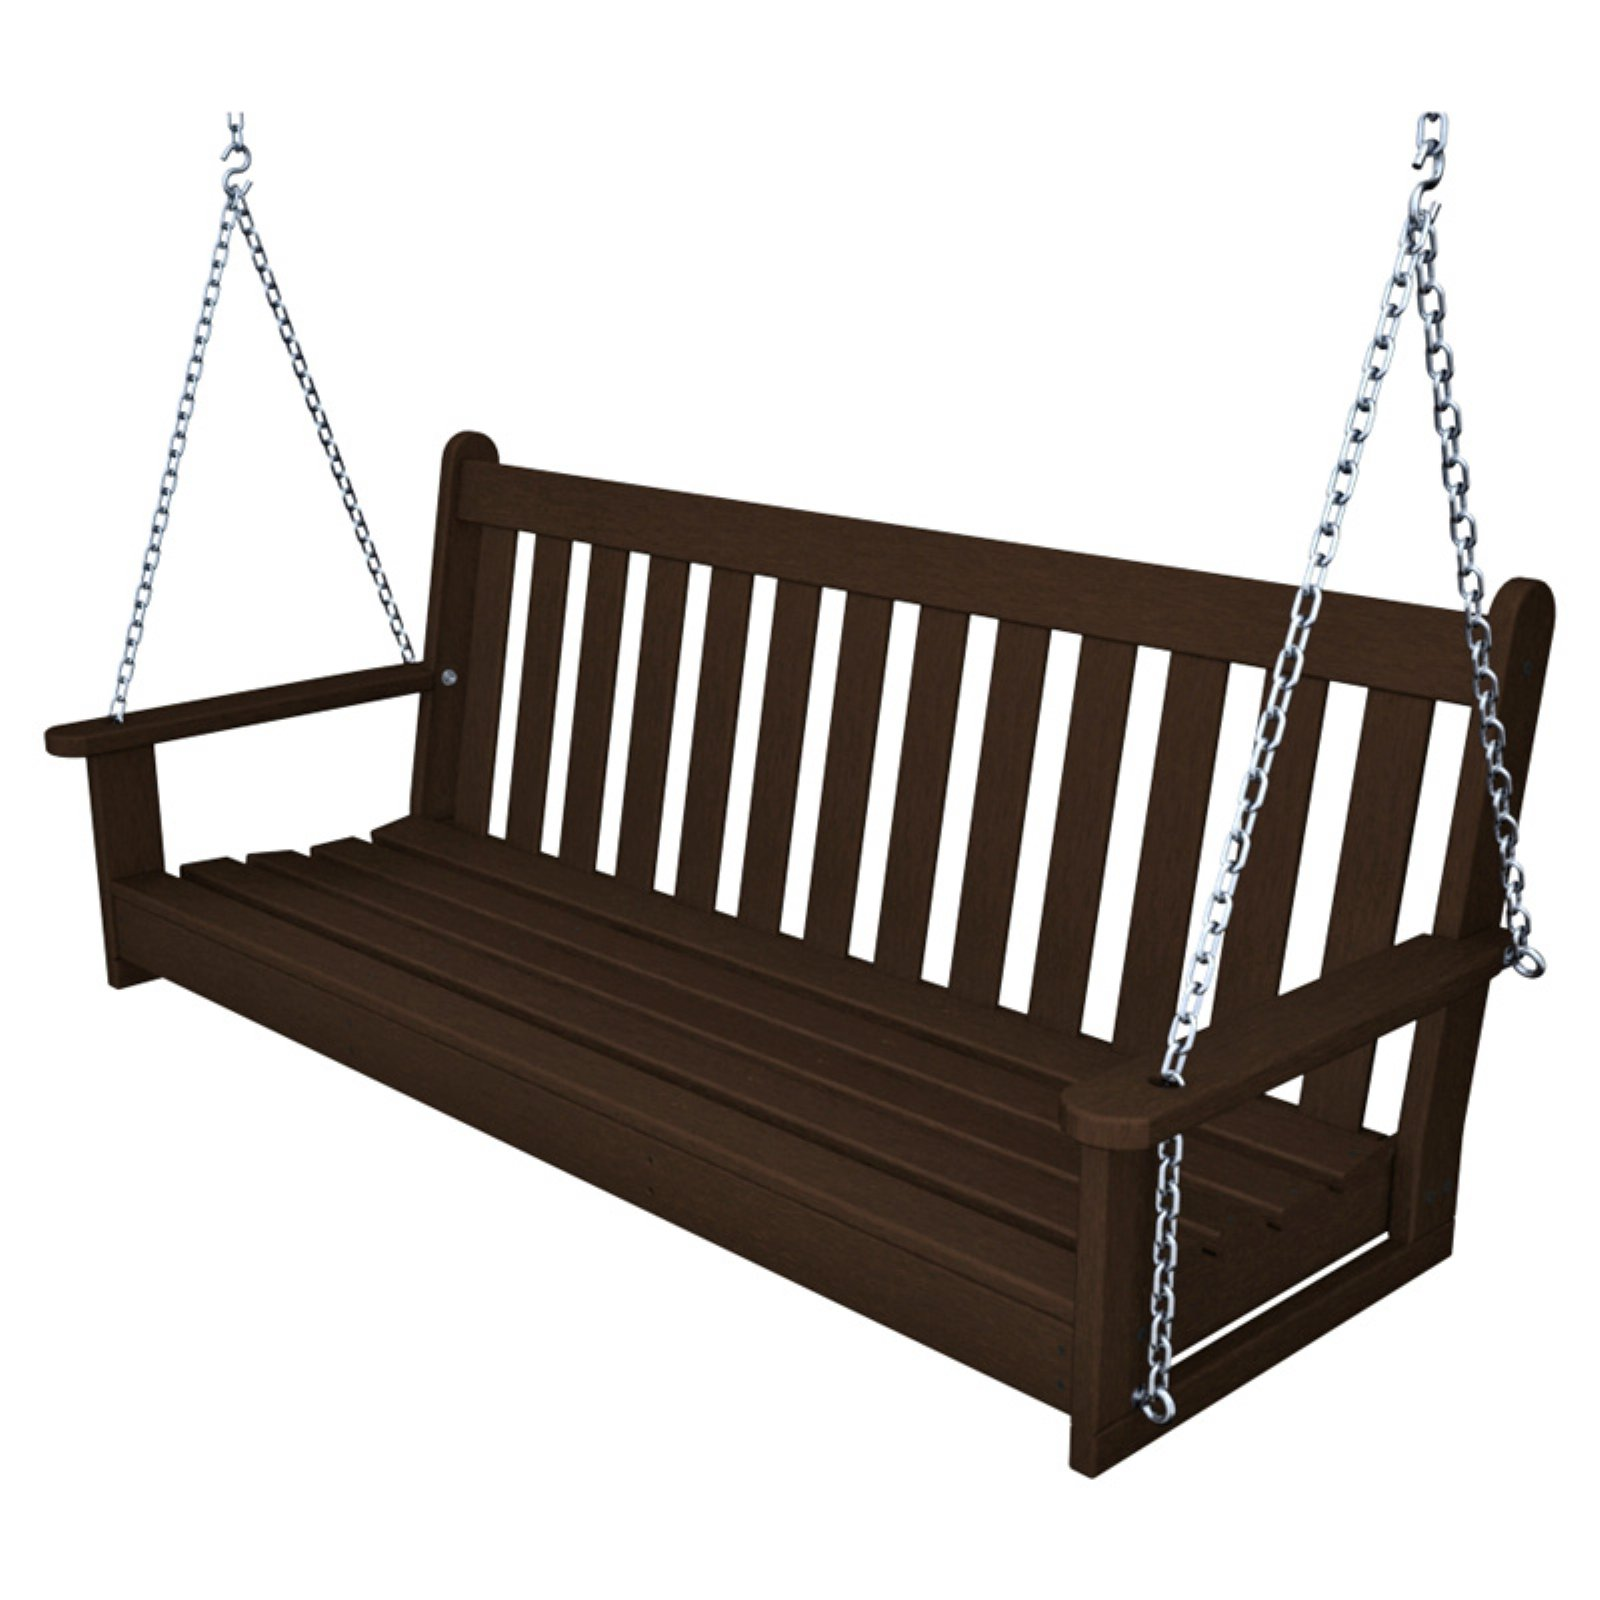 POLYWOOD® Vineyard Recycled Plastic 5 ft. Porch Swing